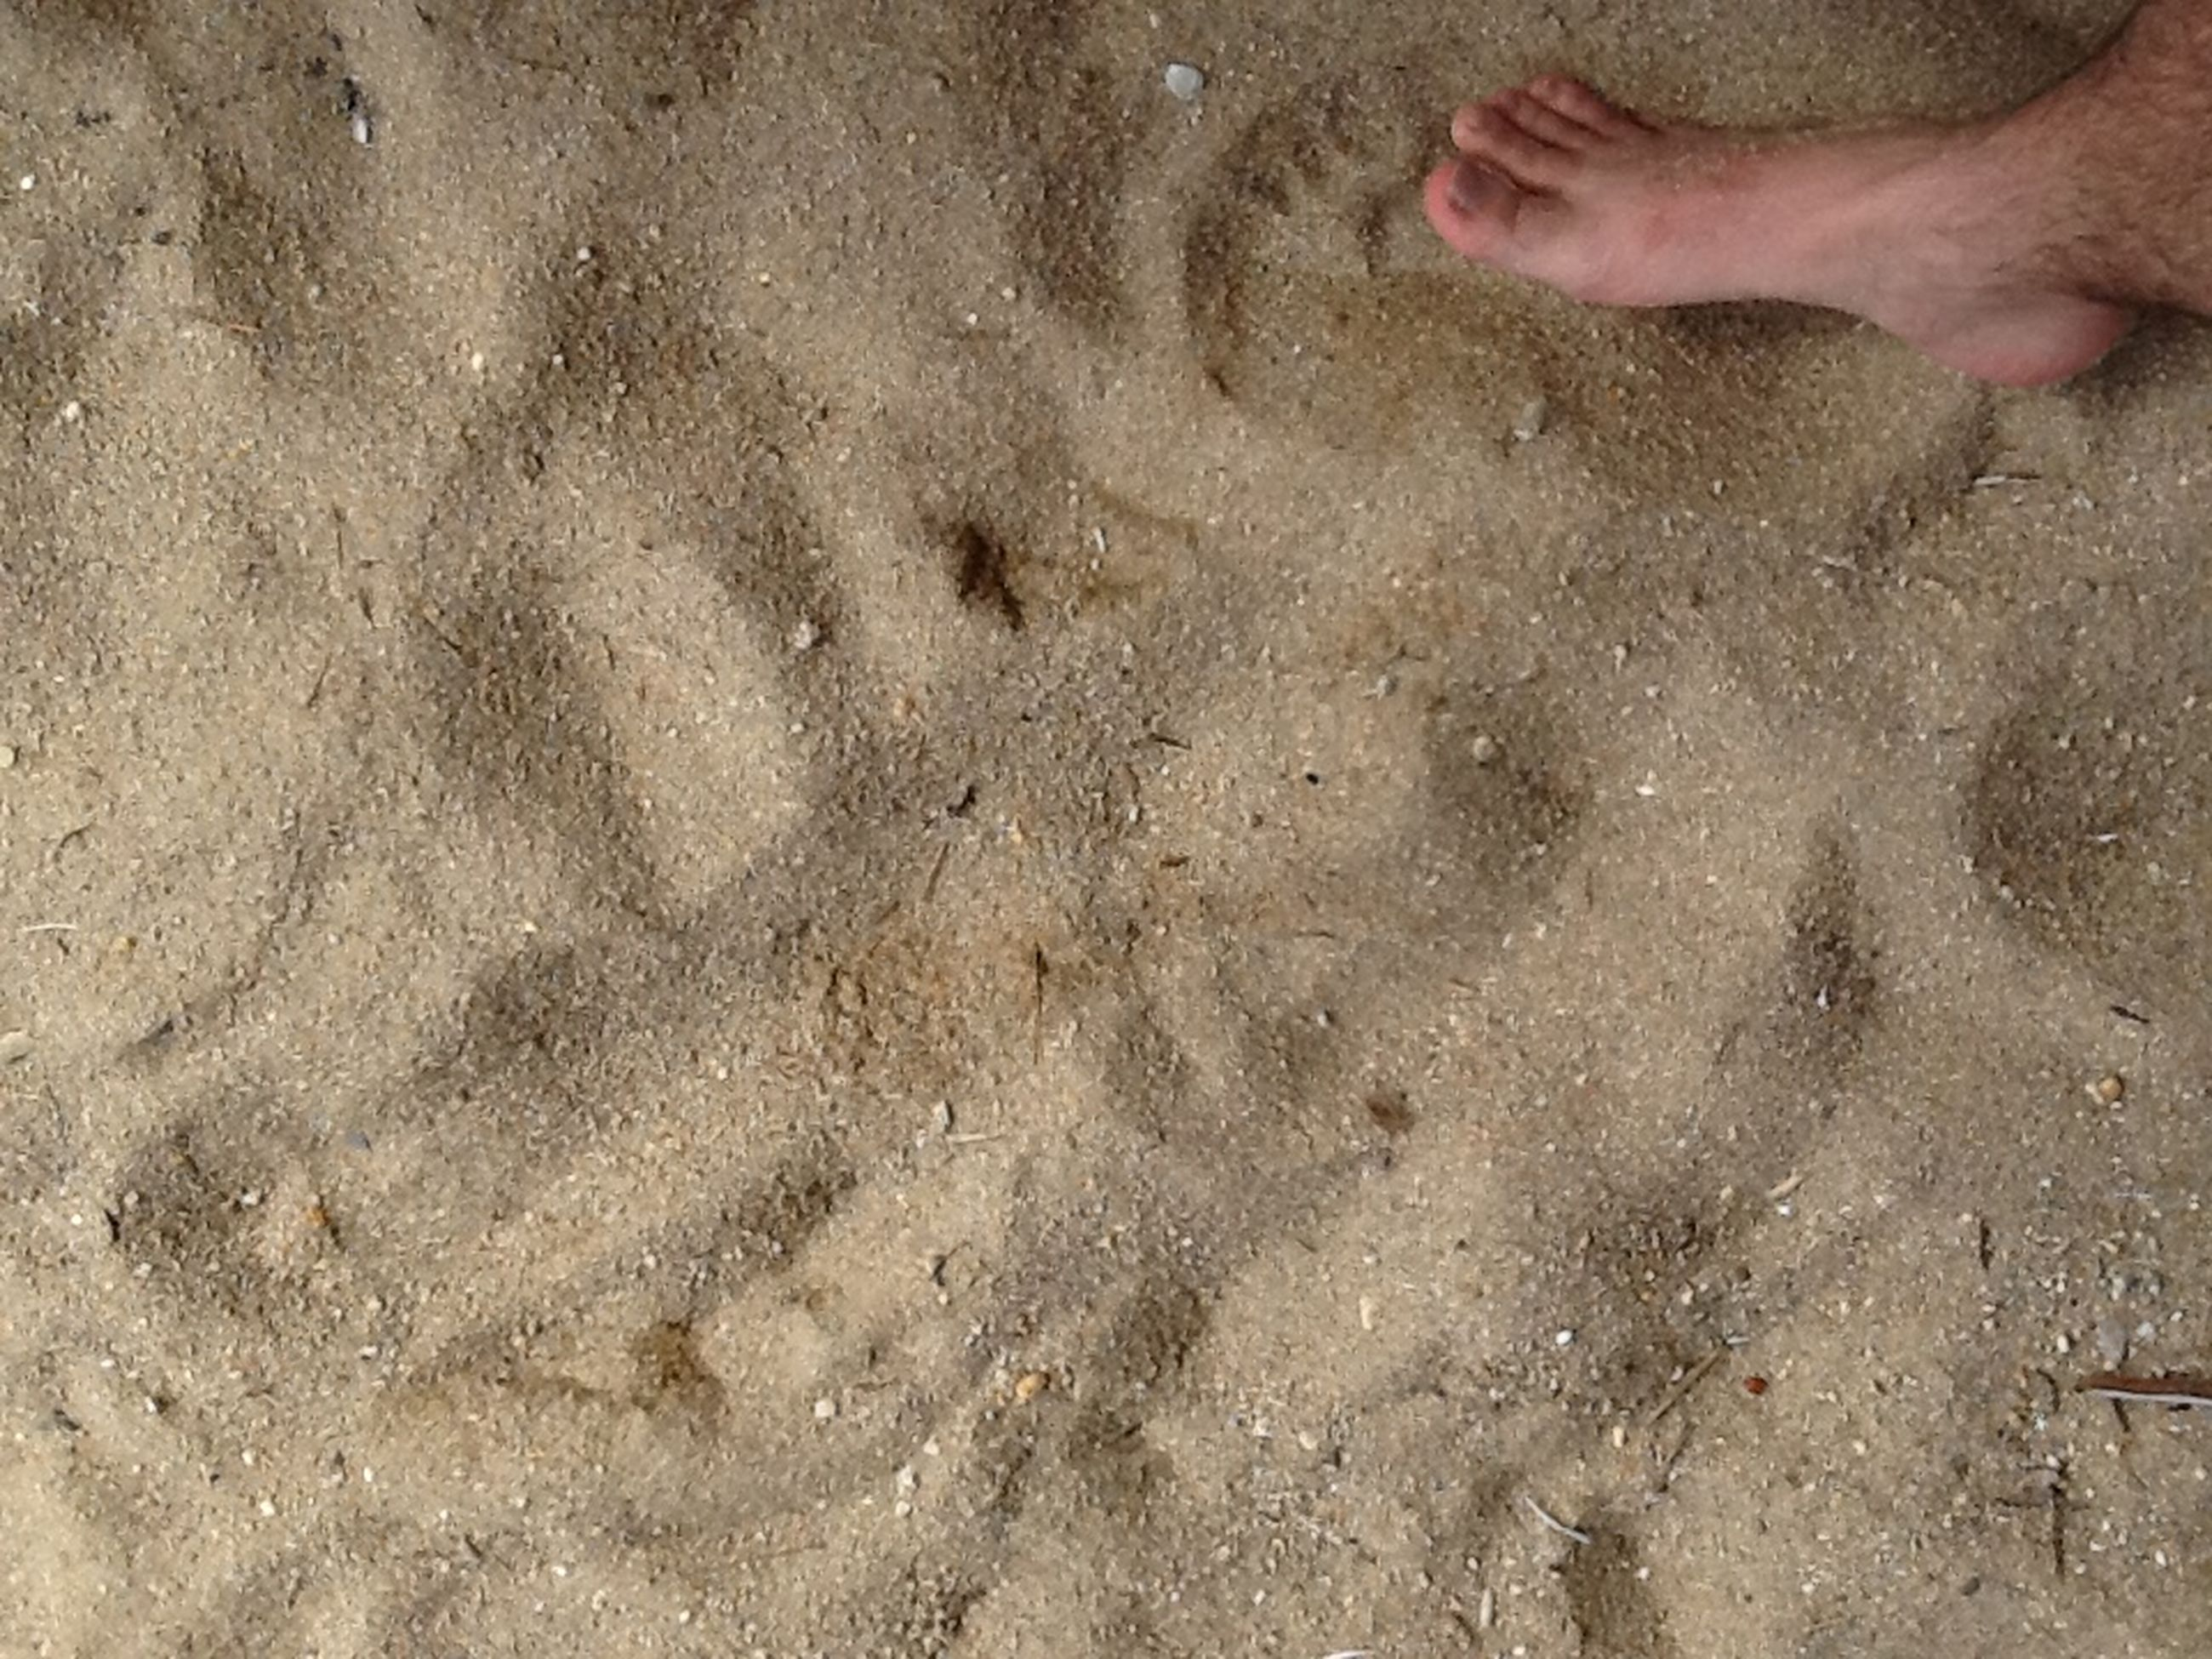 beach, sand, high angle view, water, low section, shore, person, lifestyles, leisure activity, unrecognizable person, wet, barefoot, part of, footprint, day, outdoors, sunlight